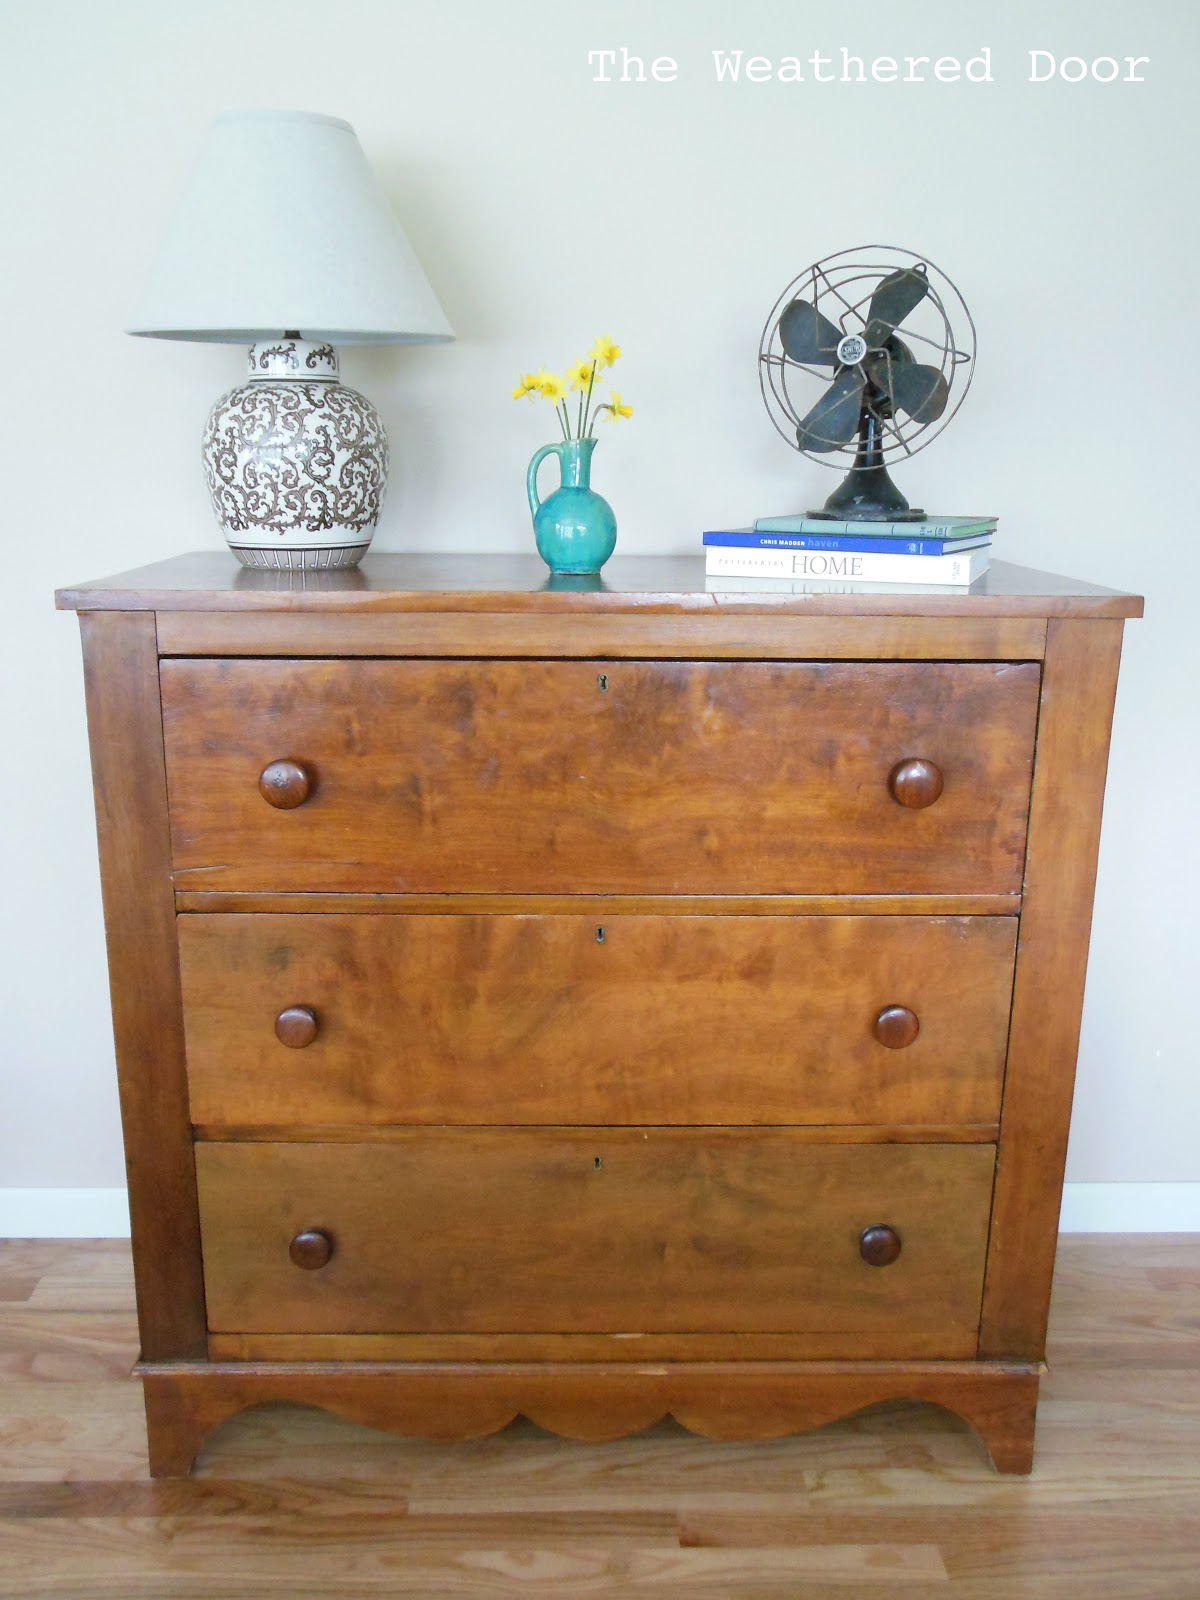 used an showpiece a how dresser desk to old bookshelf transform pin into